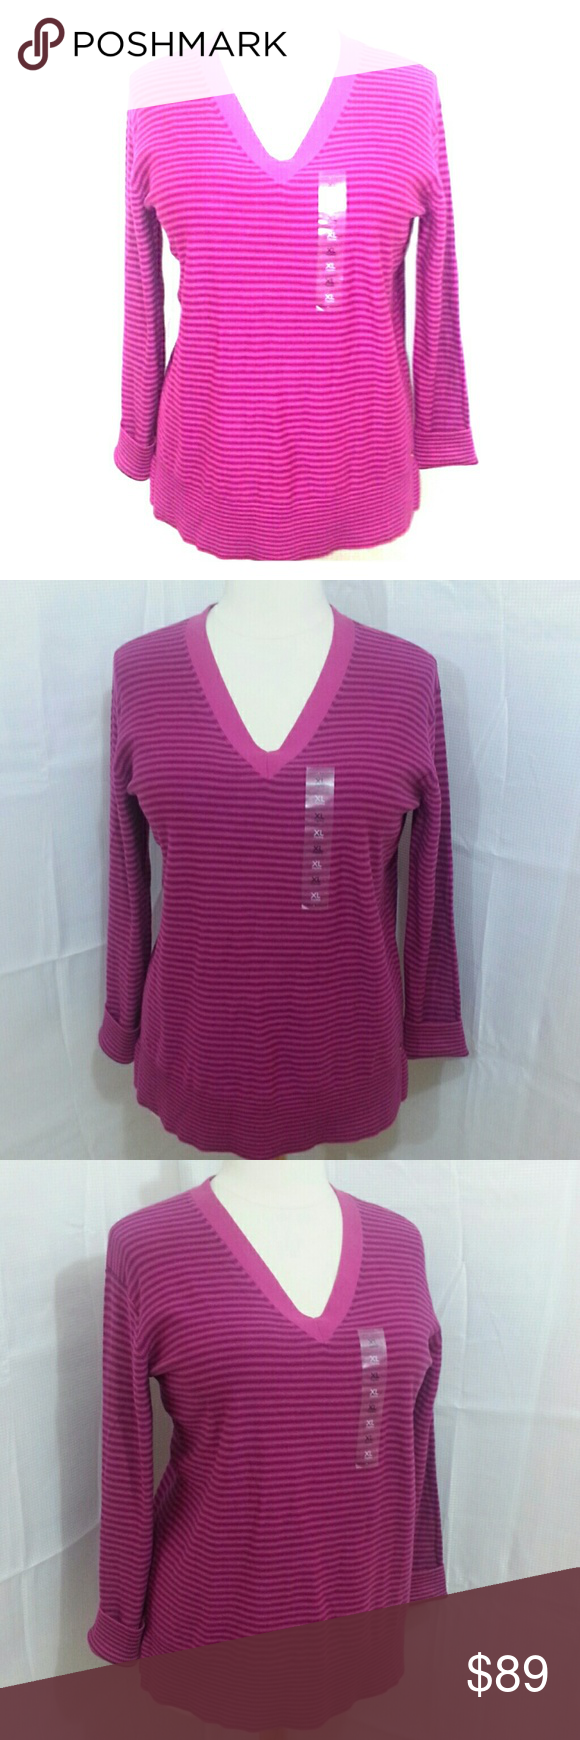 TOMMY HILFIGER V-NECK Striped Sweater. NWT NWT | Tommy hilfiger ...